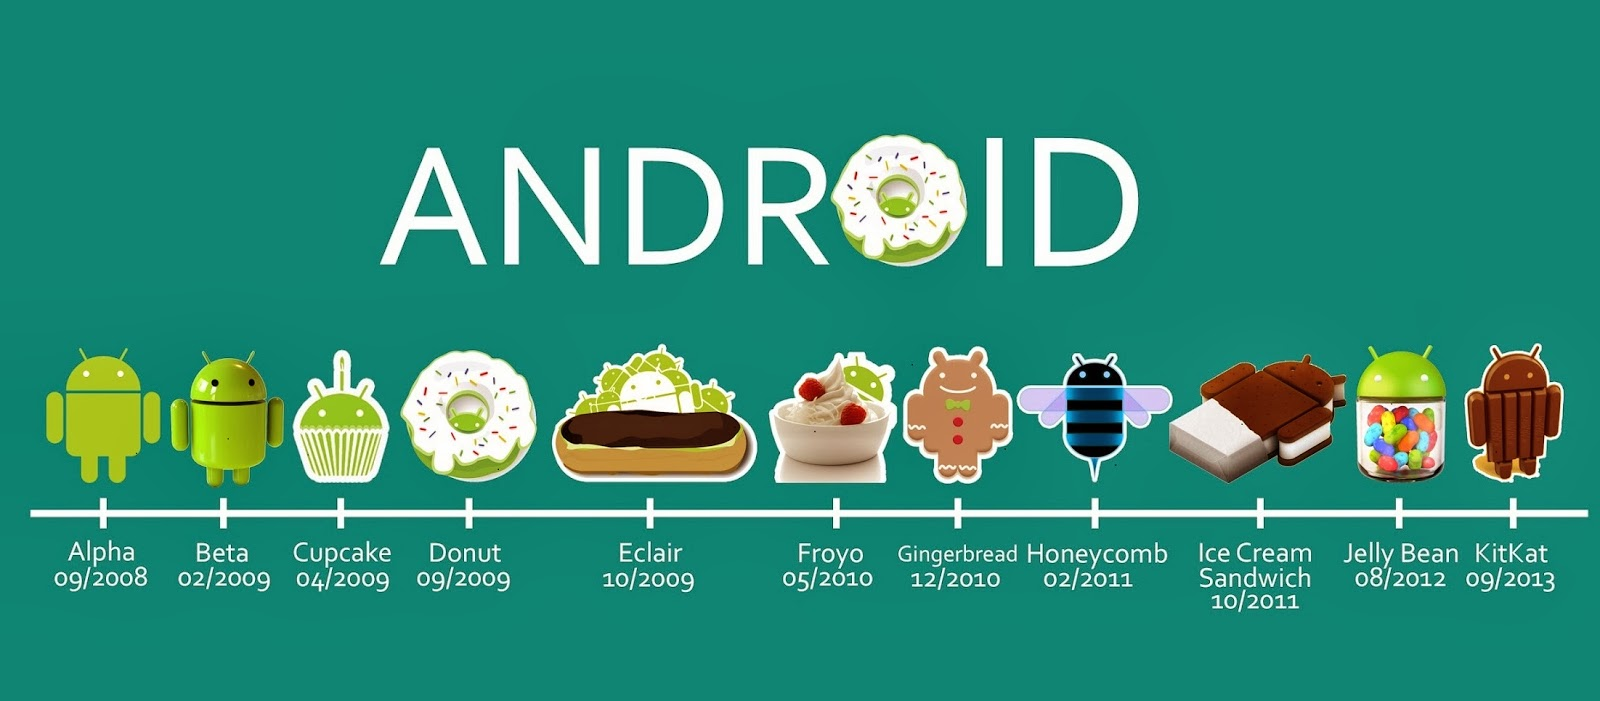 Android all names